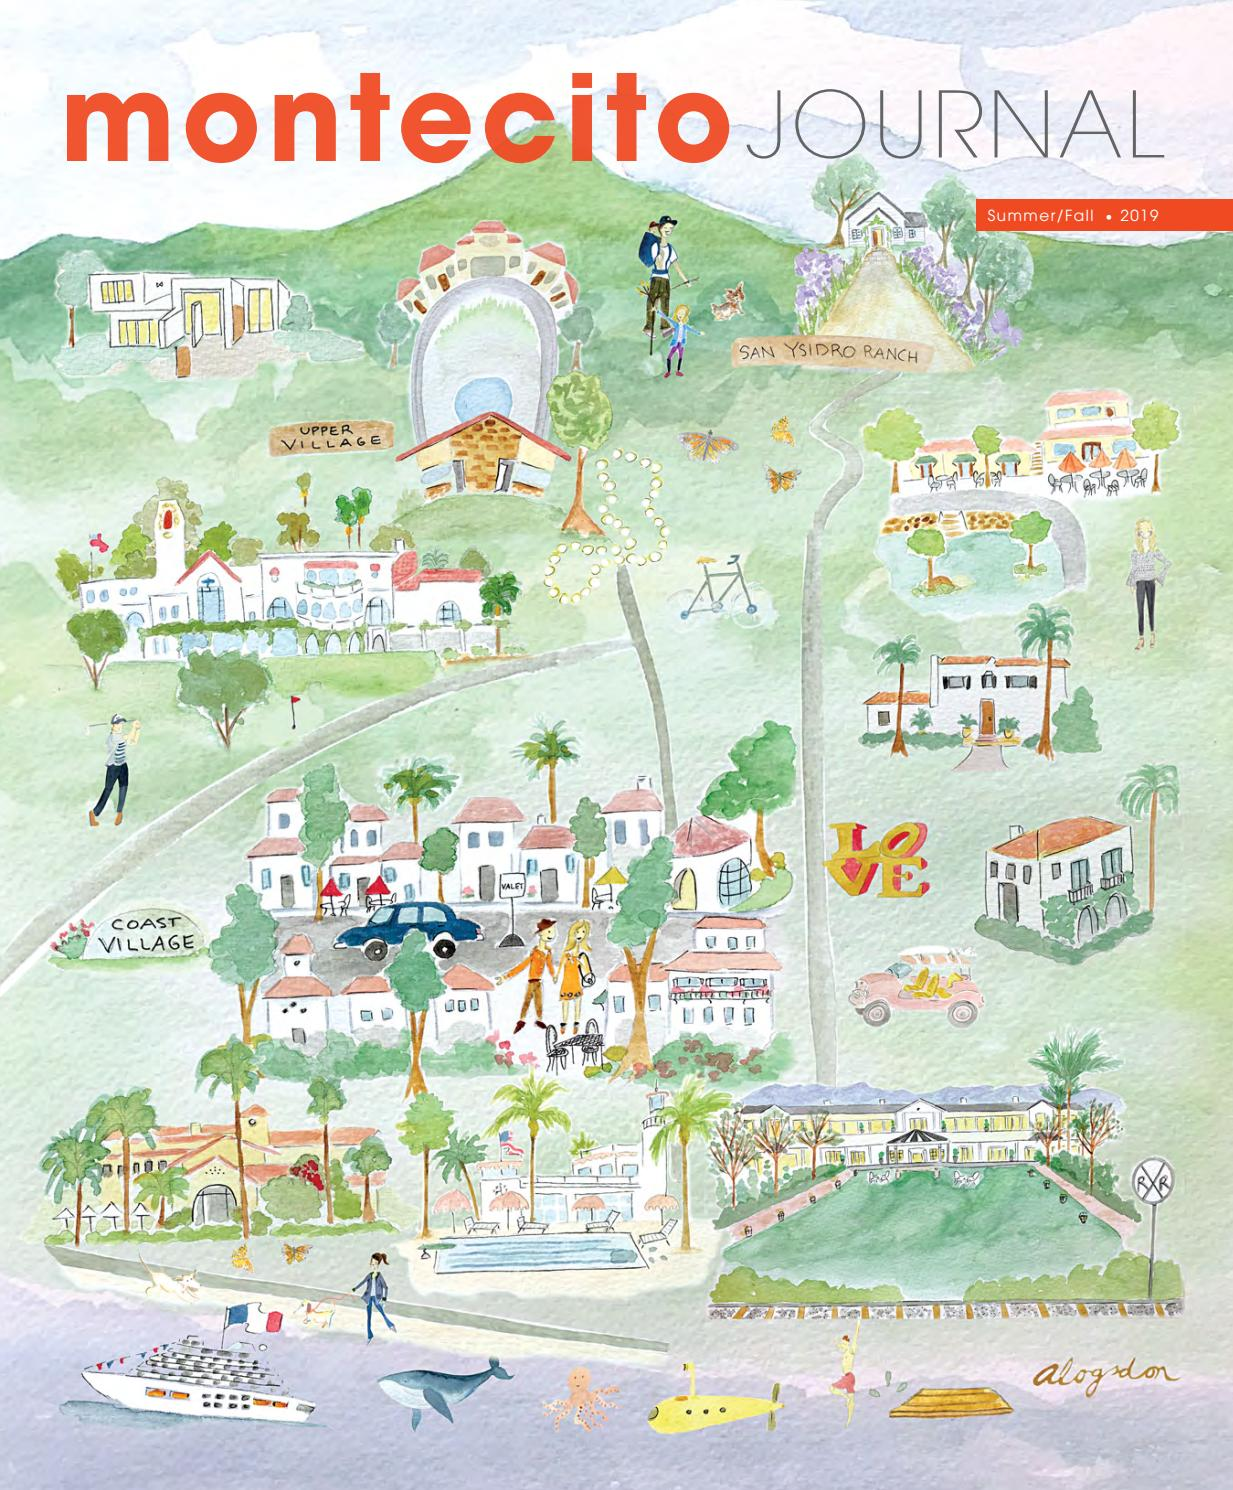 Clair De Baie Dijon montecito journal glossy edition summer/fall 2019